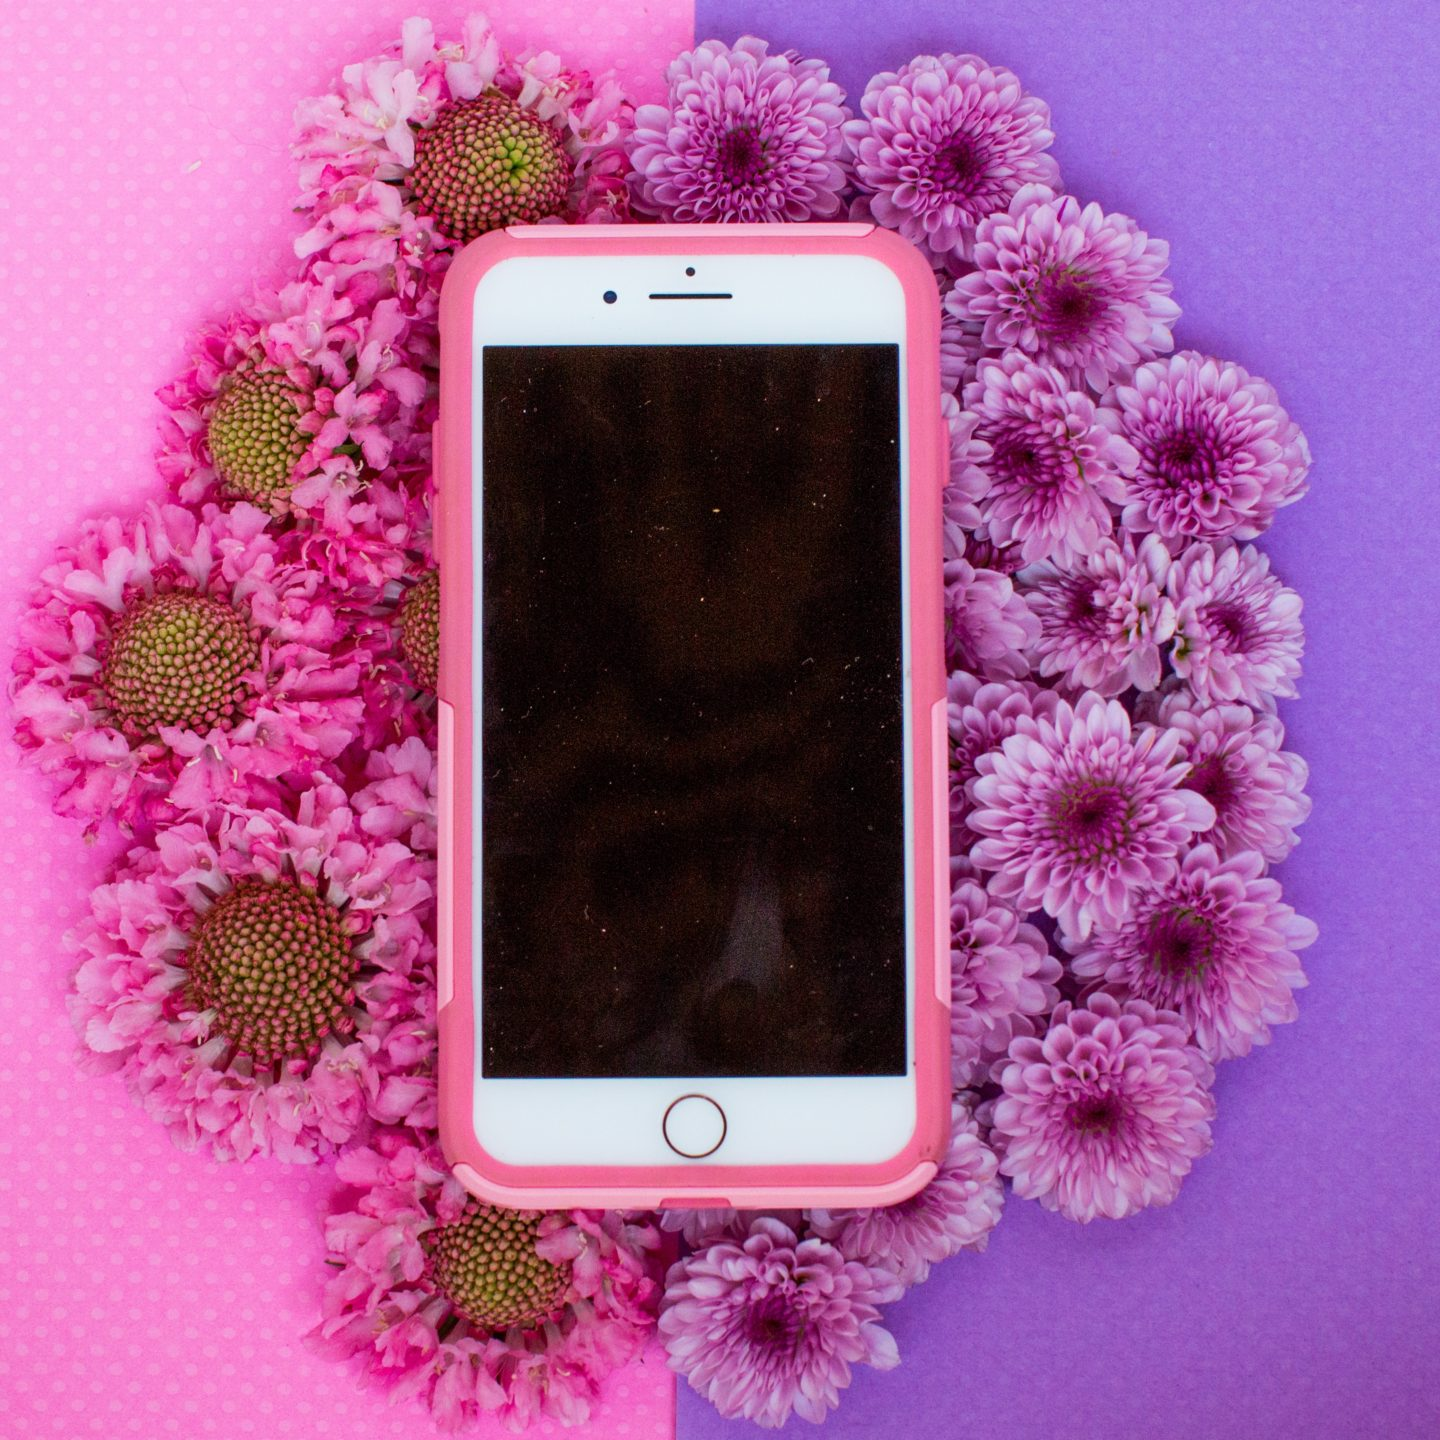 how to get instagram on iphone 4